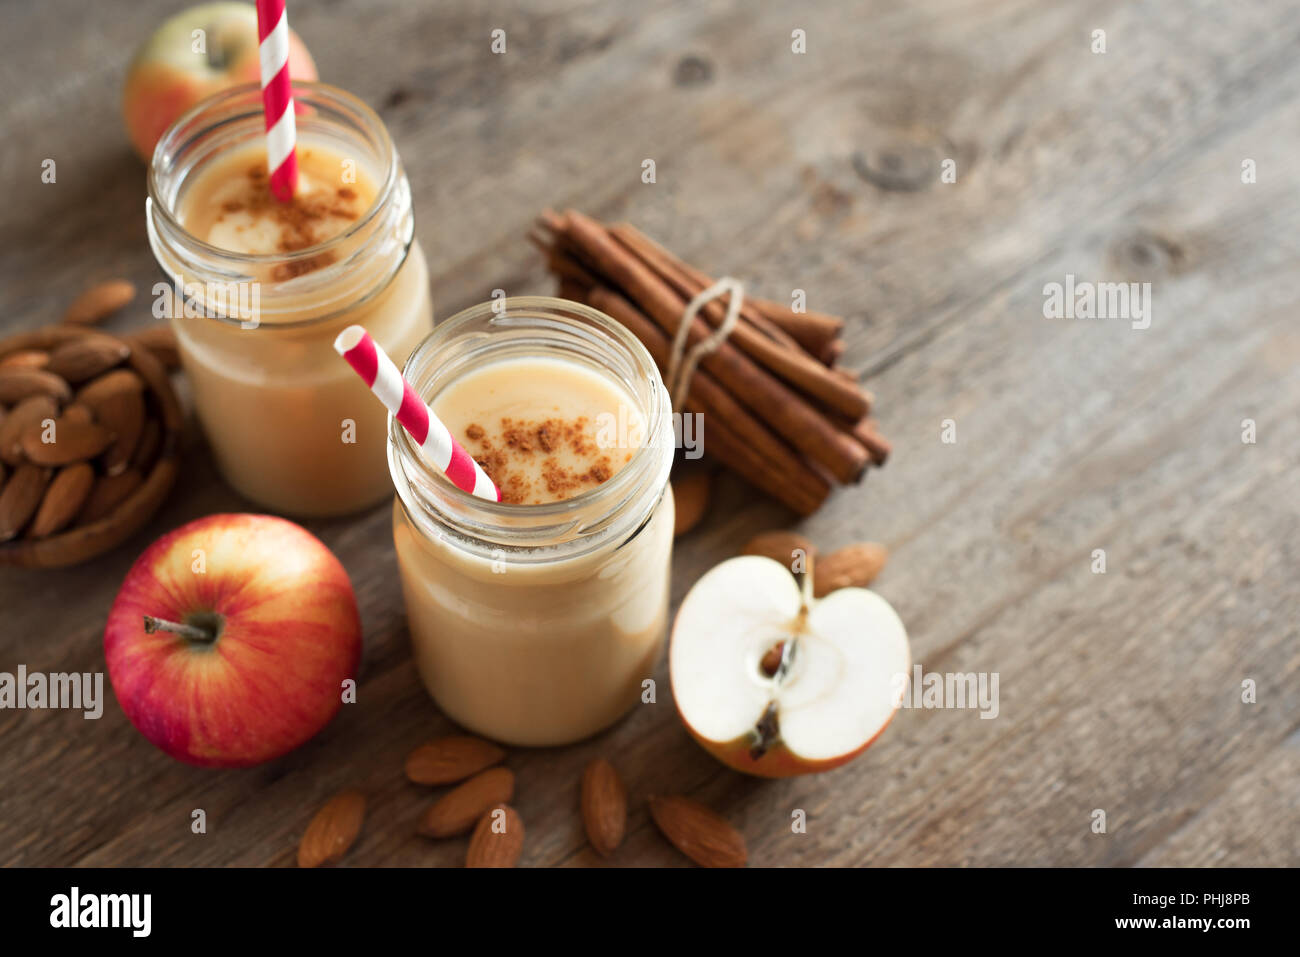 Apple pie protein smoothie drink with almond milk. Homemade apple smoothie with apple pie spices (cinnamon) on wooden background, copy space. Stock Photo